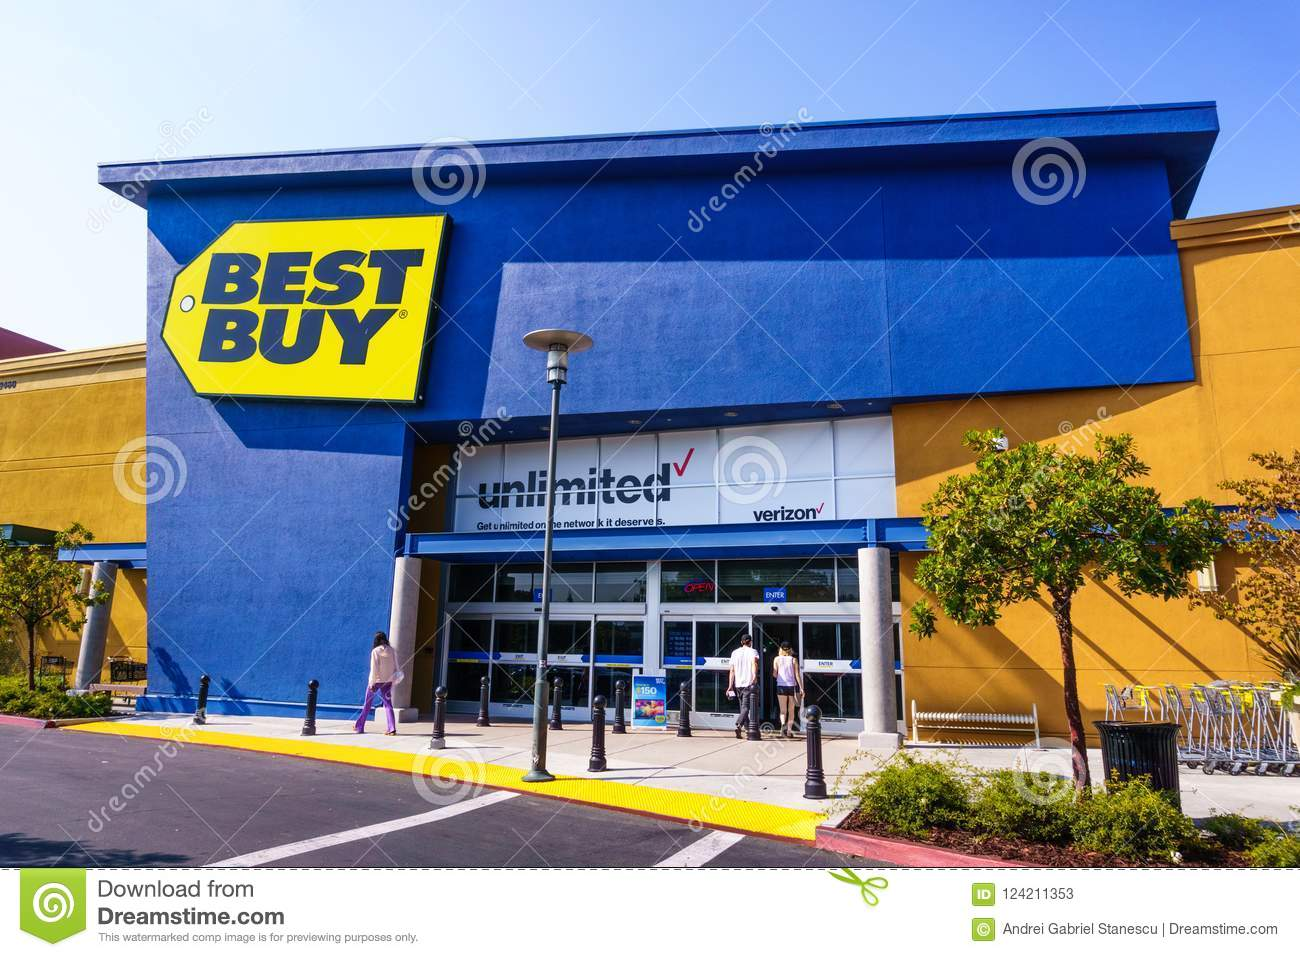 9 233 Best Buy Photos Free Royalty Free Stock Photos From Dreamstime